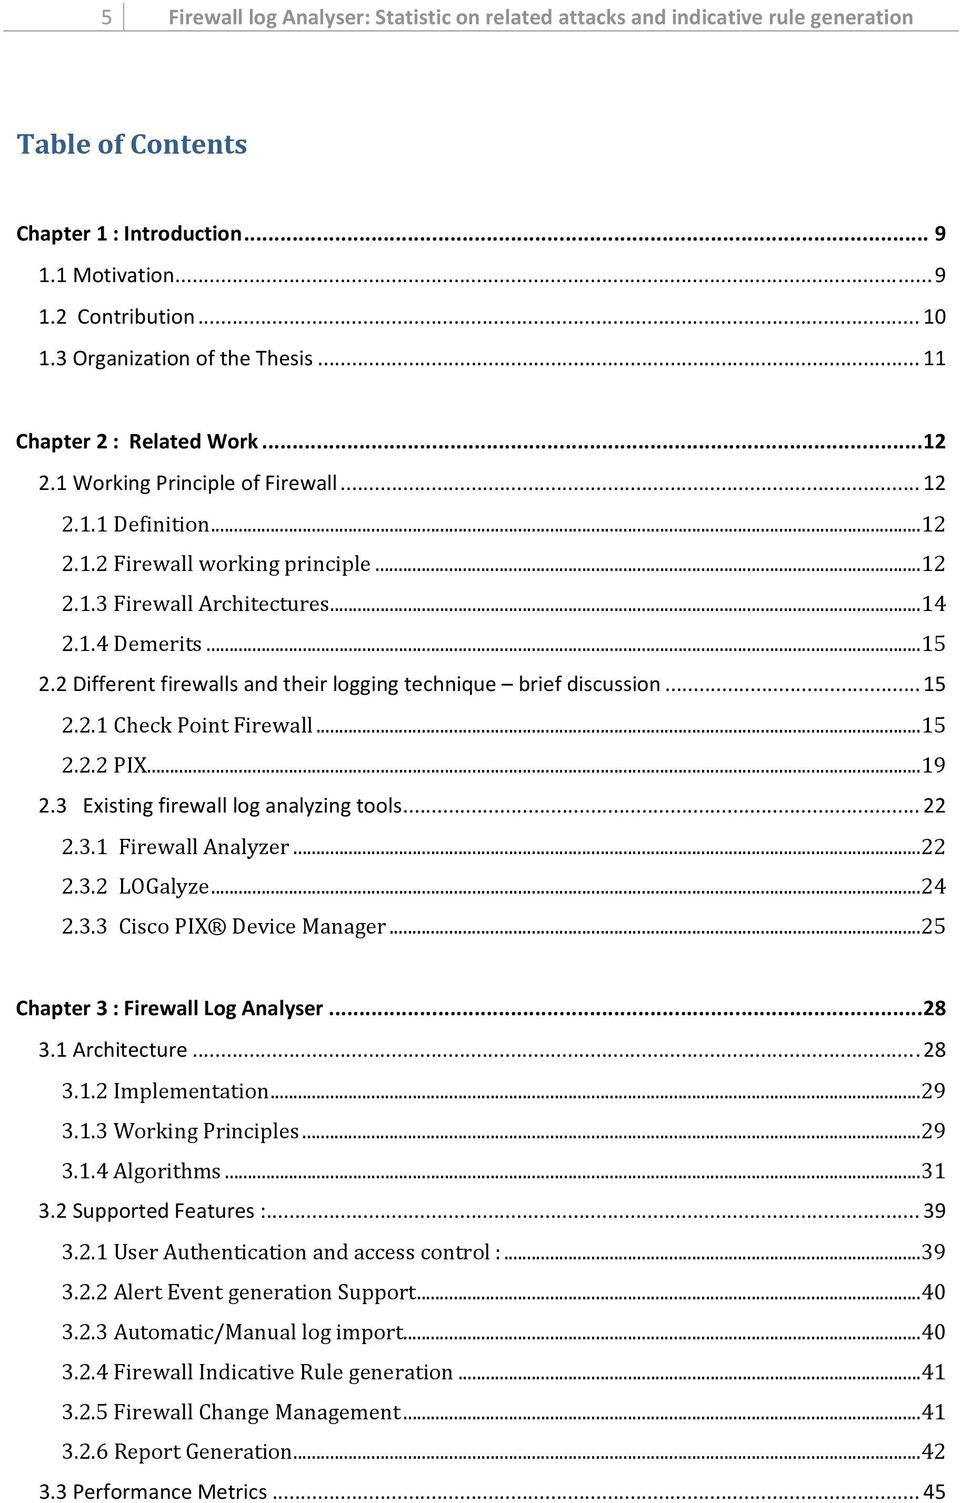 1.4 Demerits...15 2.2 Different firewalls and their logging technique brief discussion... 15 2.2.1 Check Point Firewall...15 2.2.2 PIX...19 2.3 Existing firewall log analyzing tools... 22 2.3.1 Firewall Analyzer.